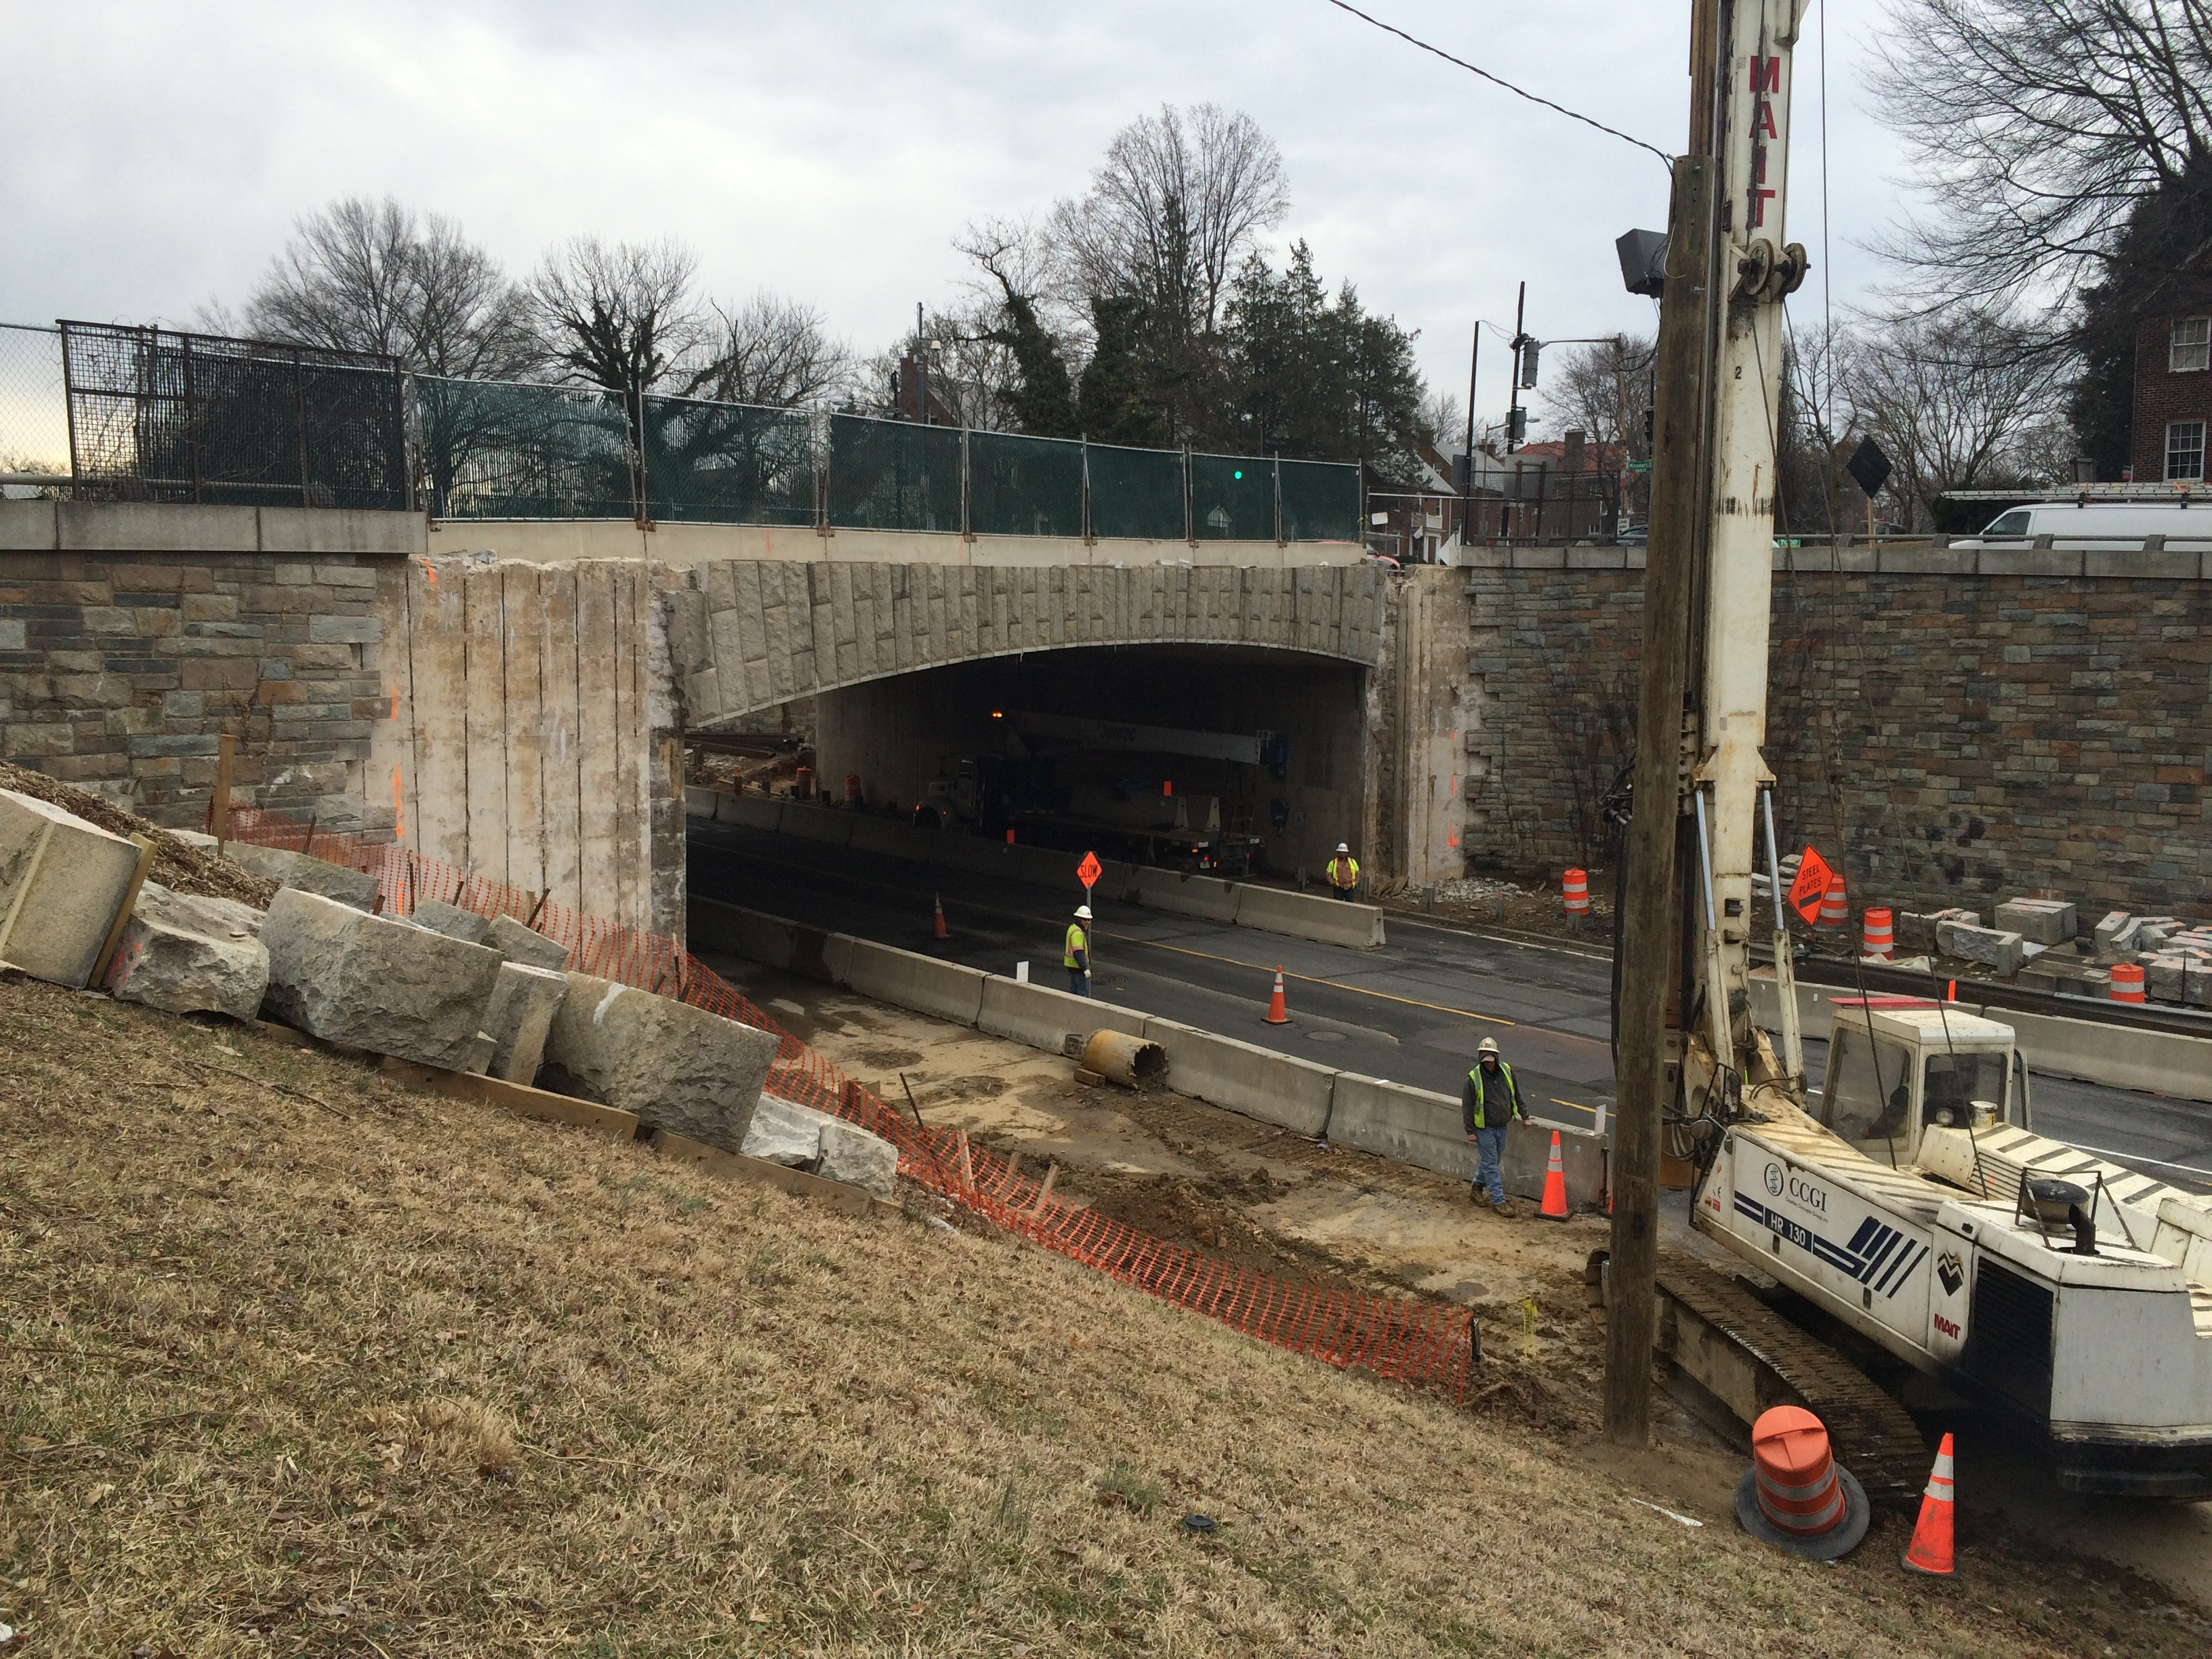 Construction brings delays on 16th Street